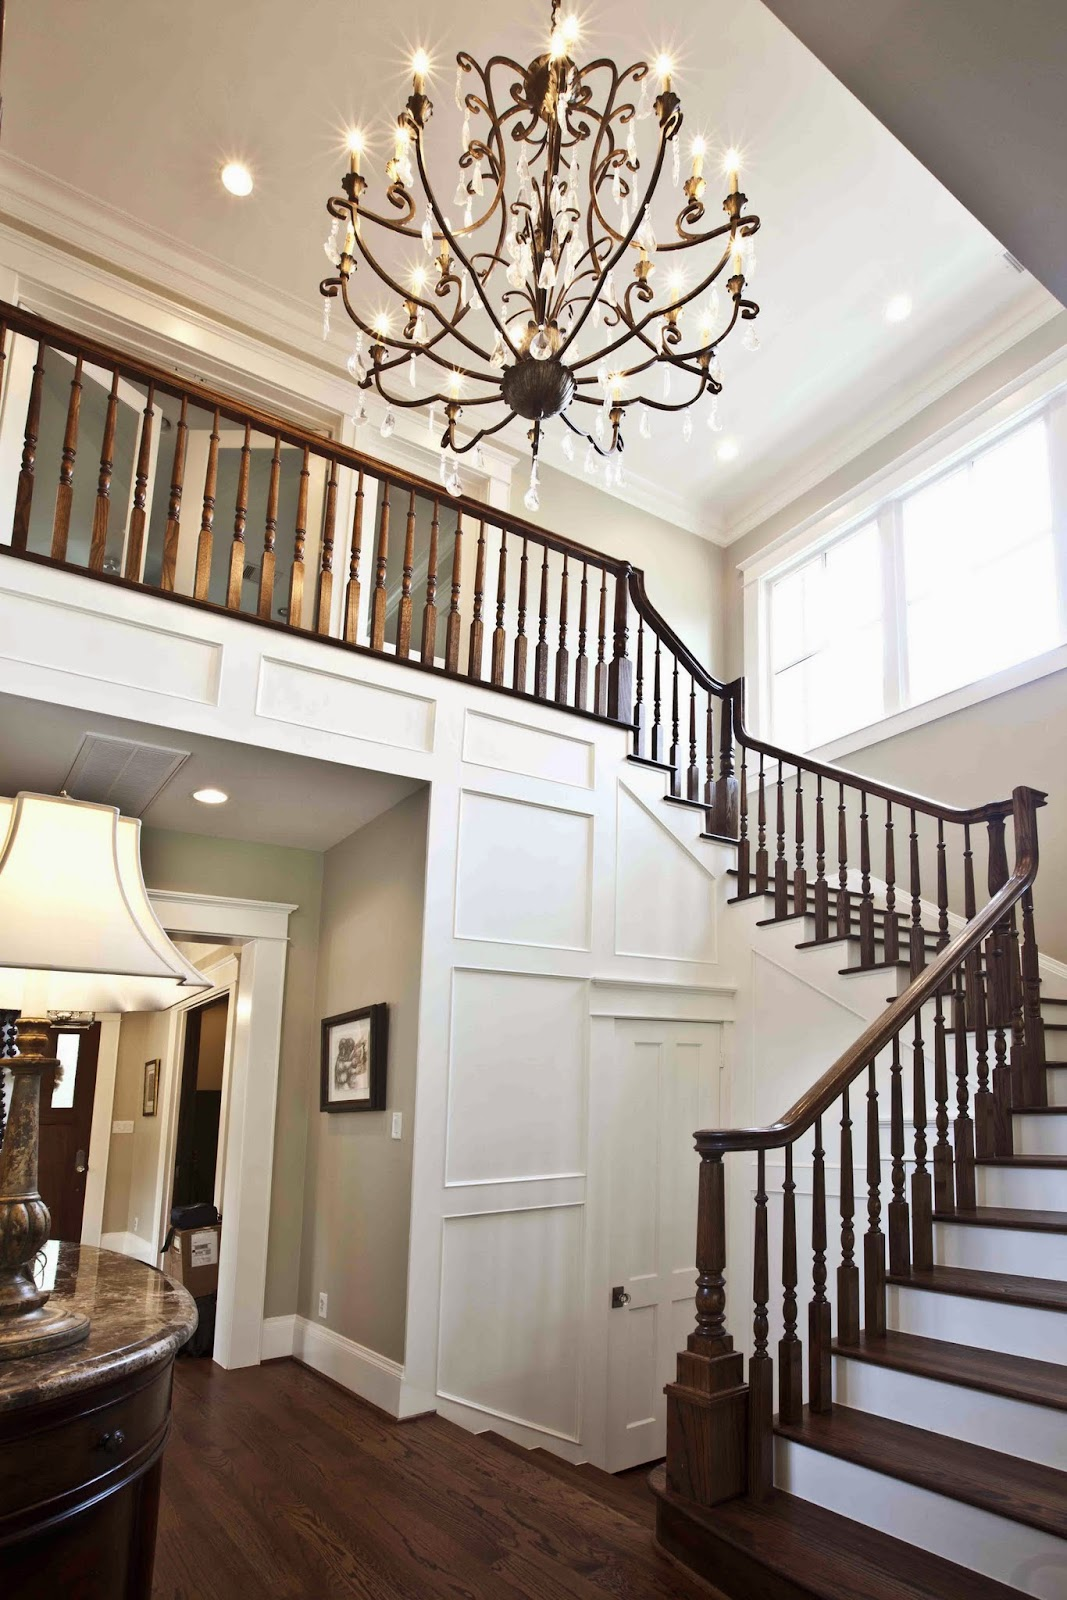 New craftsman home photo shoot cedar hill farmhouse - What is a craftsman home ...